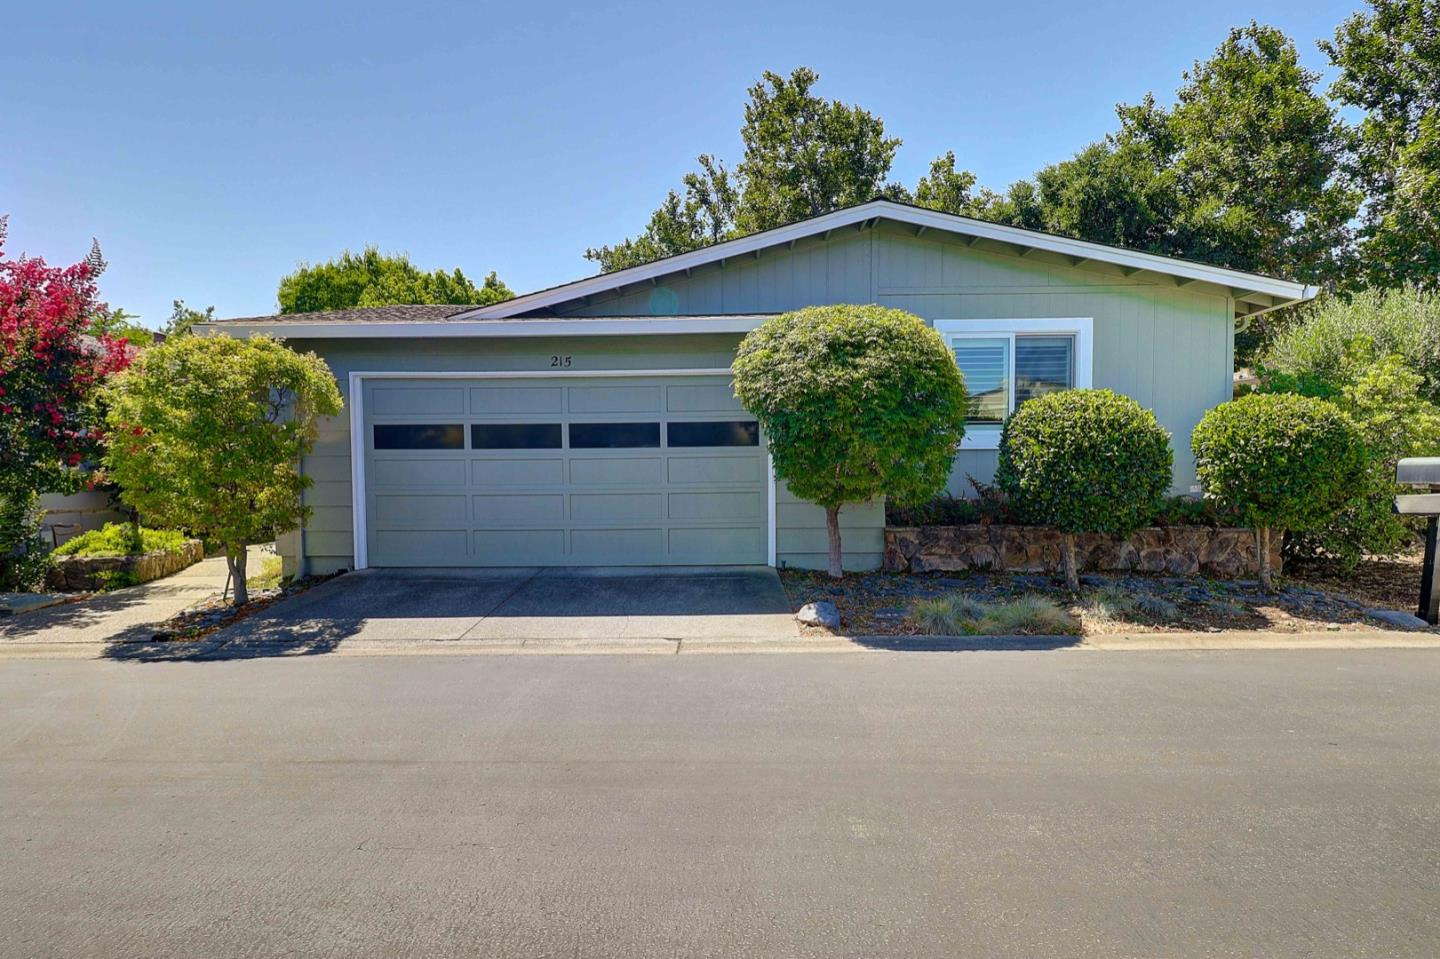 215 Leisure DR 215, Morgan Hill in Santa Clara County, CA 95037 Home for Sale